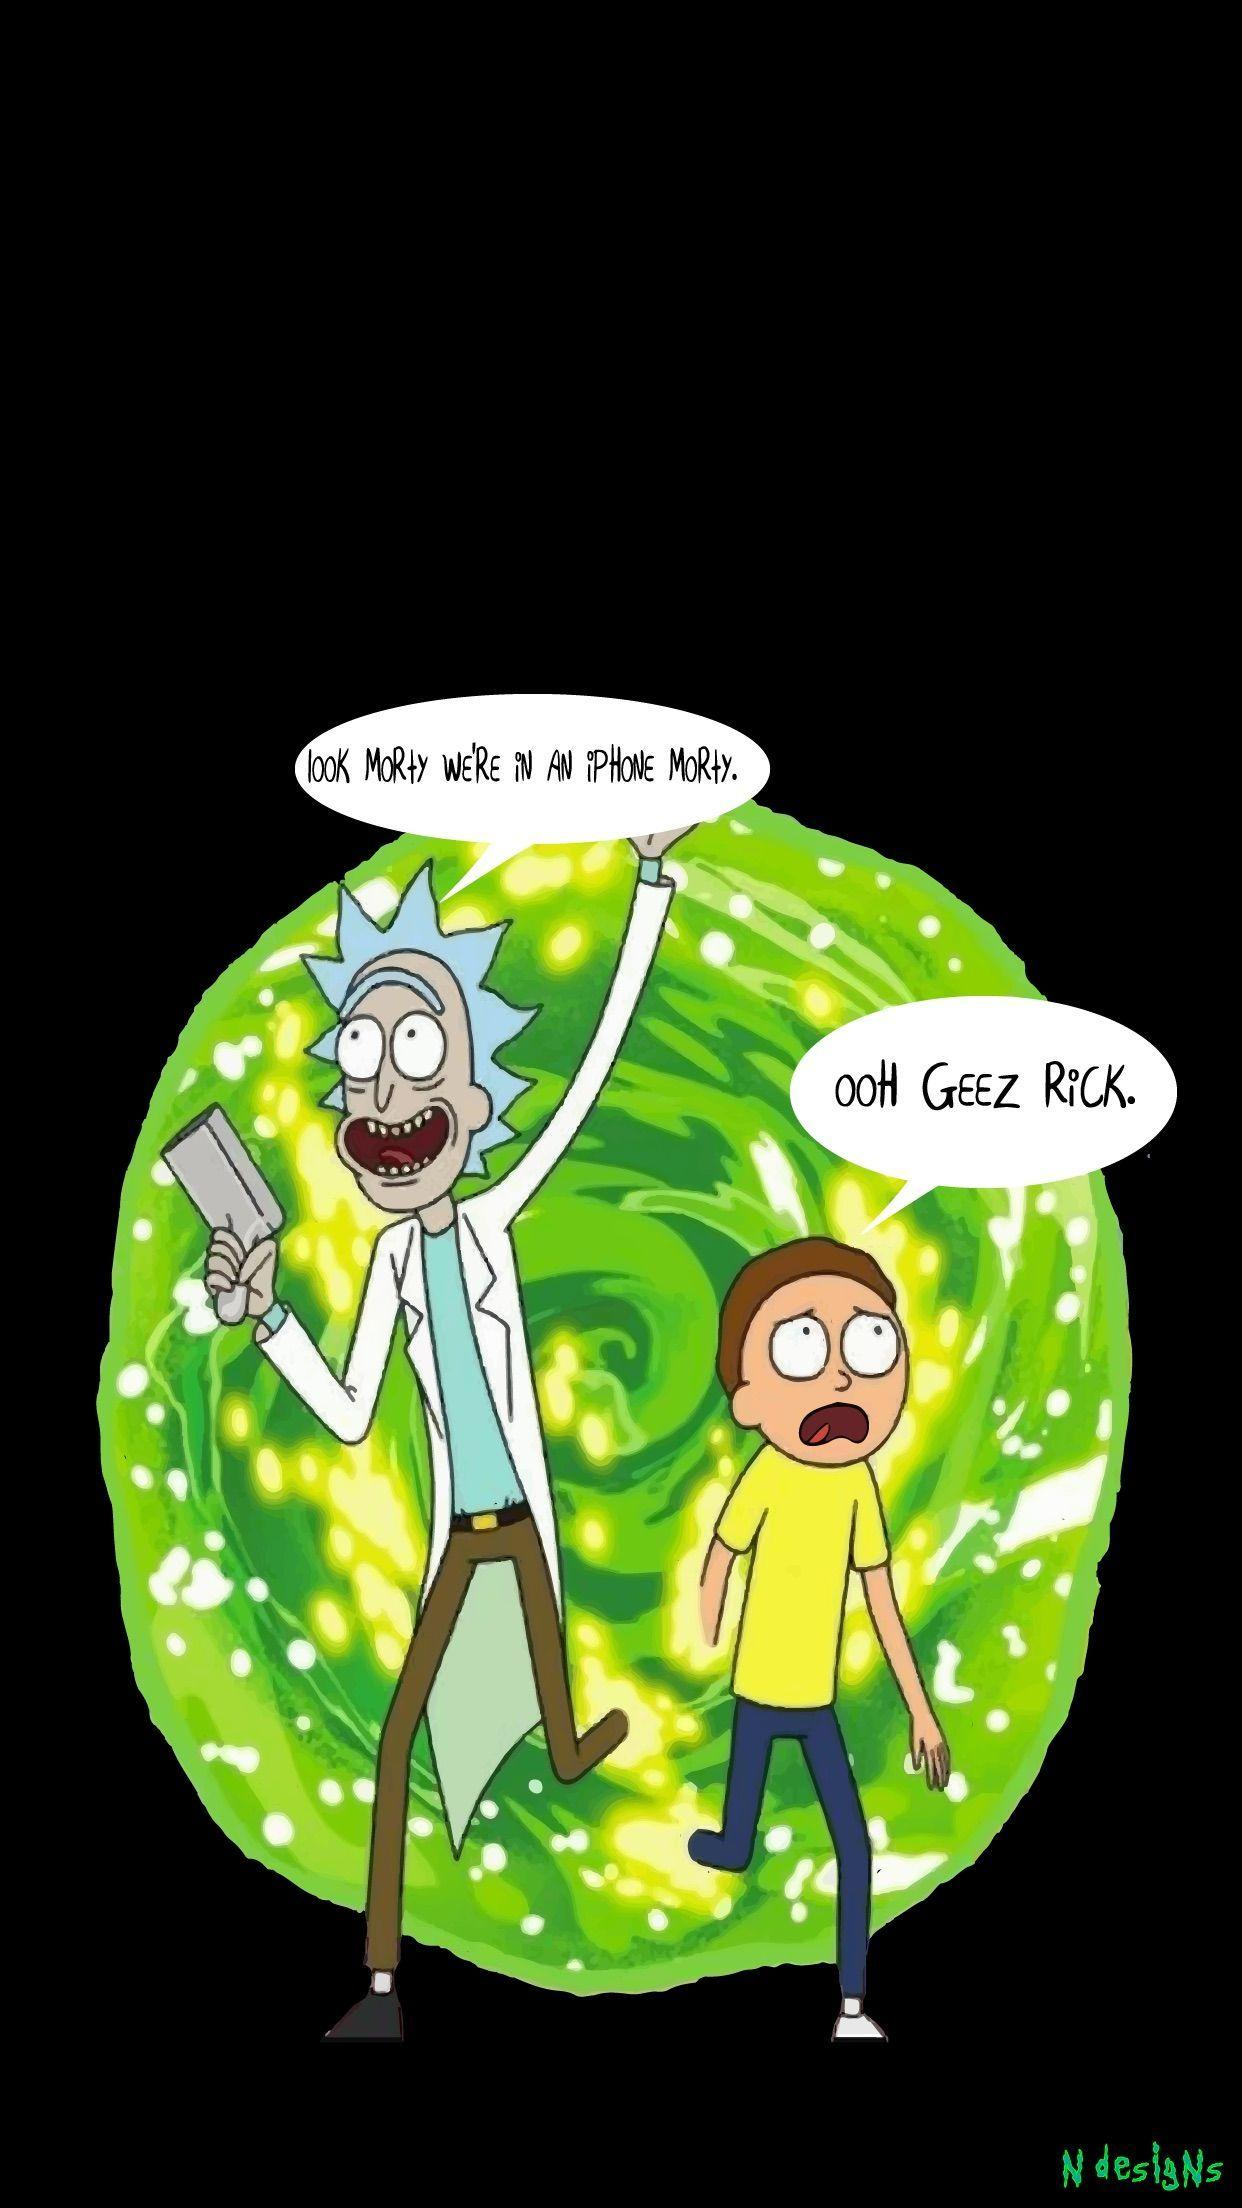 Rick And Morty Quotes Wallpapers - Wallpaper Cave